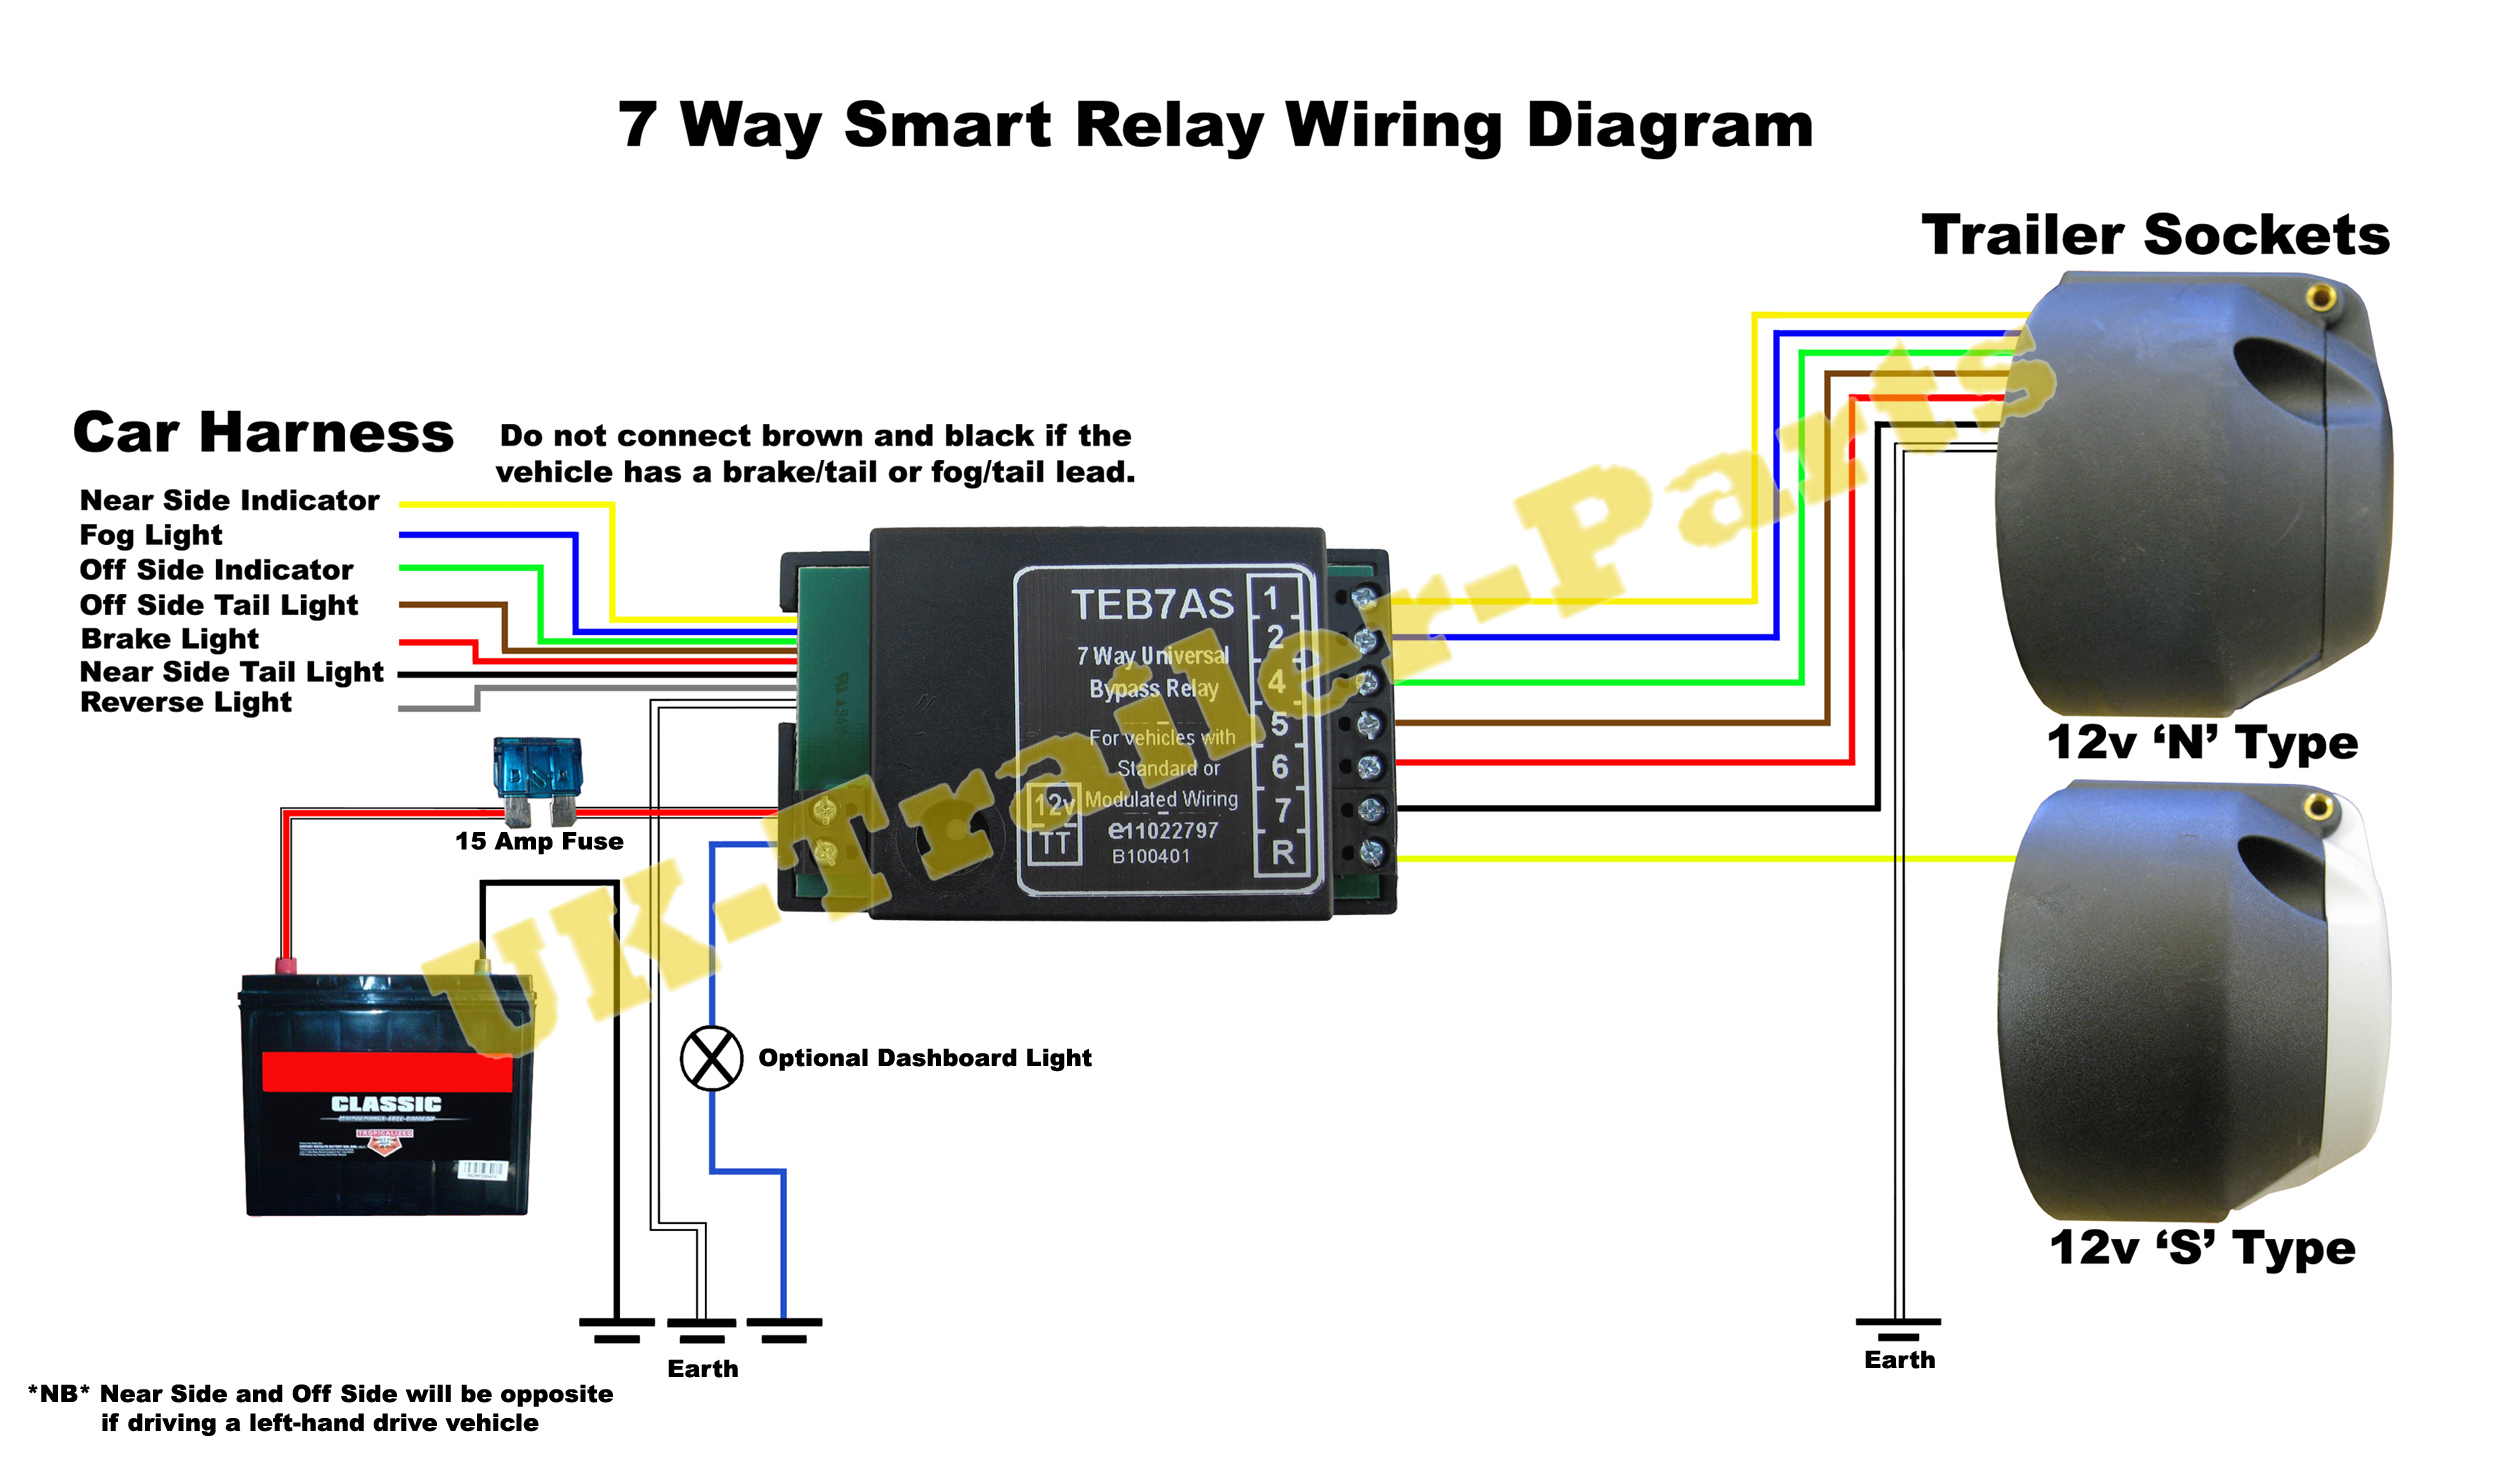 smart relay wiring diagram2 7 way universal bypass relay wiring diagram uk trailer parts ford transit towbar wiring diagram at creativeand.co